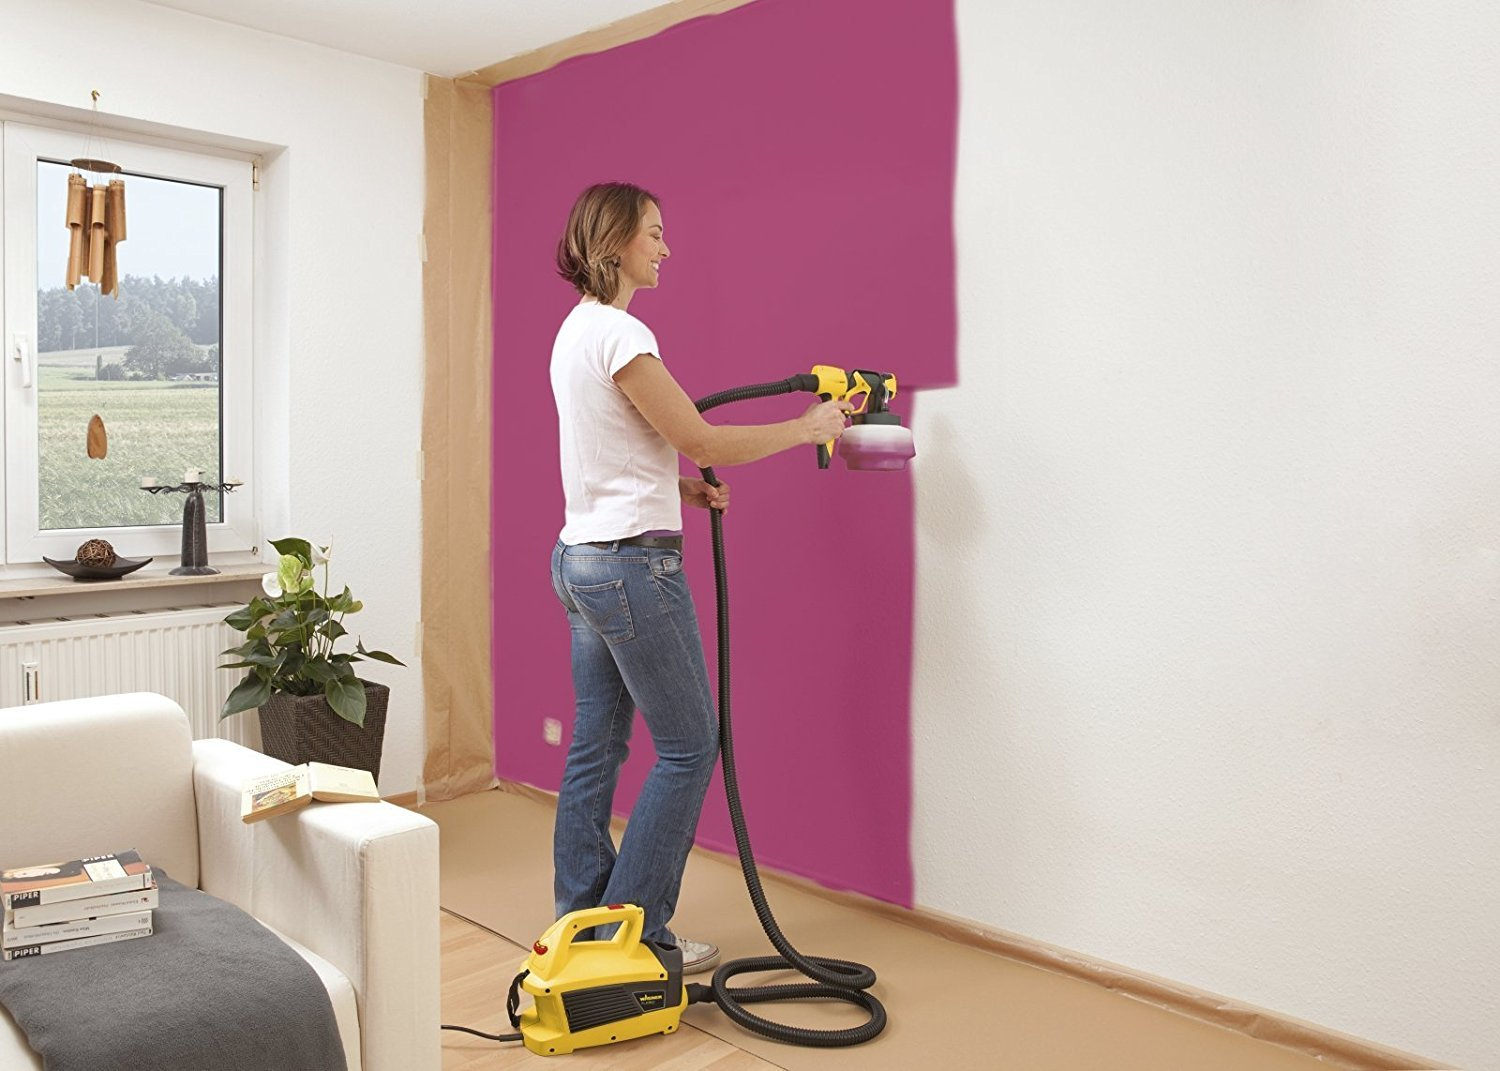 Great Woman Painting Interior Wall With Wagner Paint Sprayer